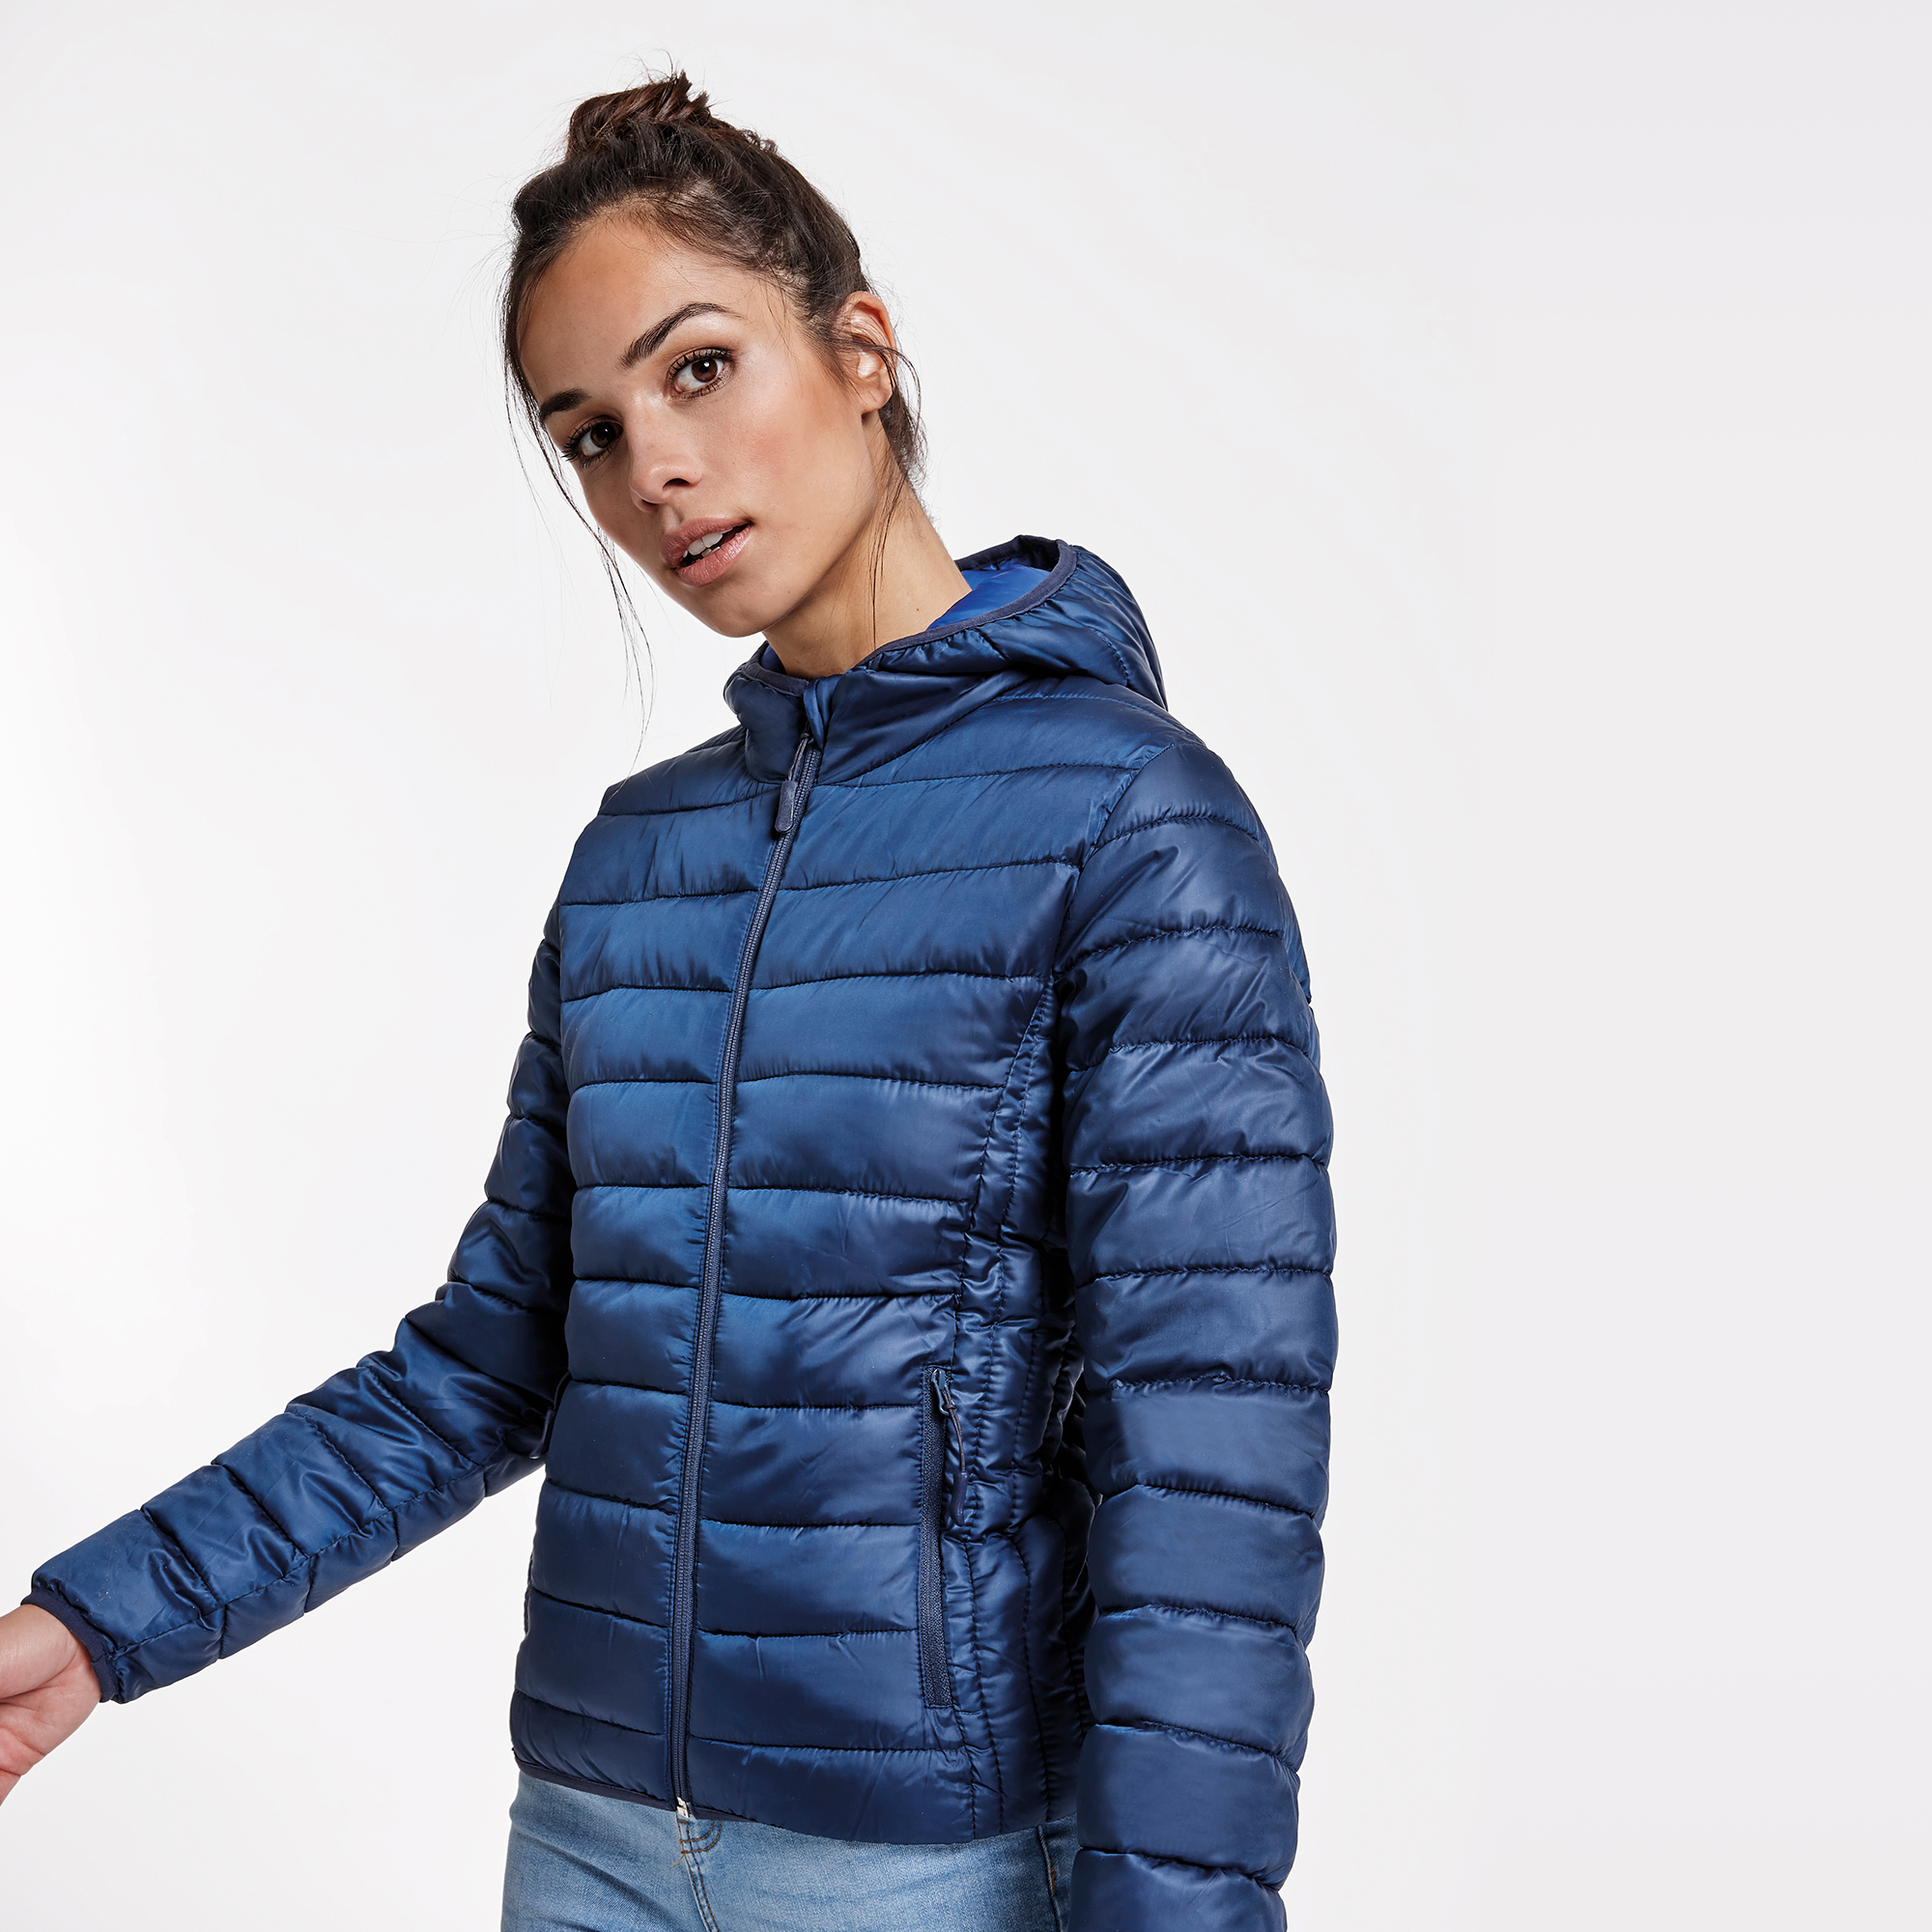 Giacca promozionale Norway Woman (RA5091)   Roly